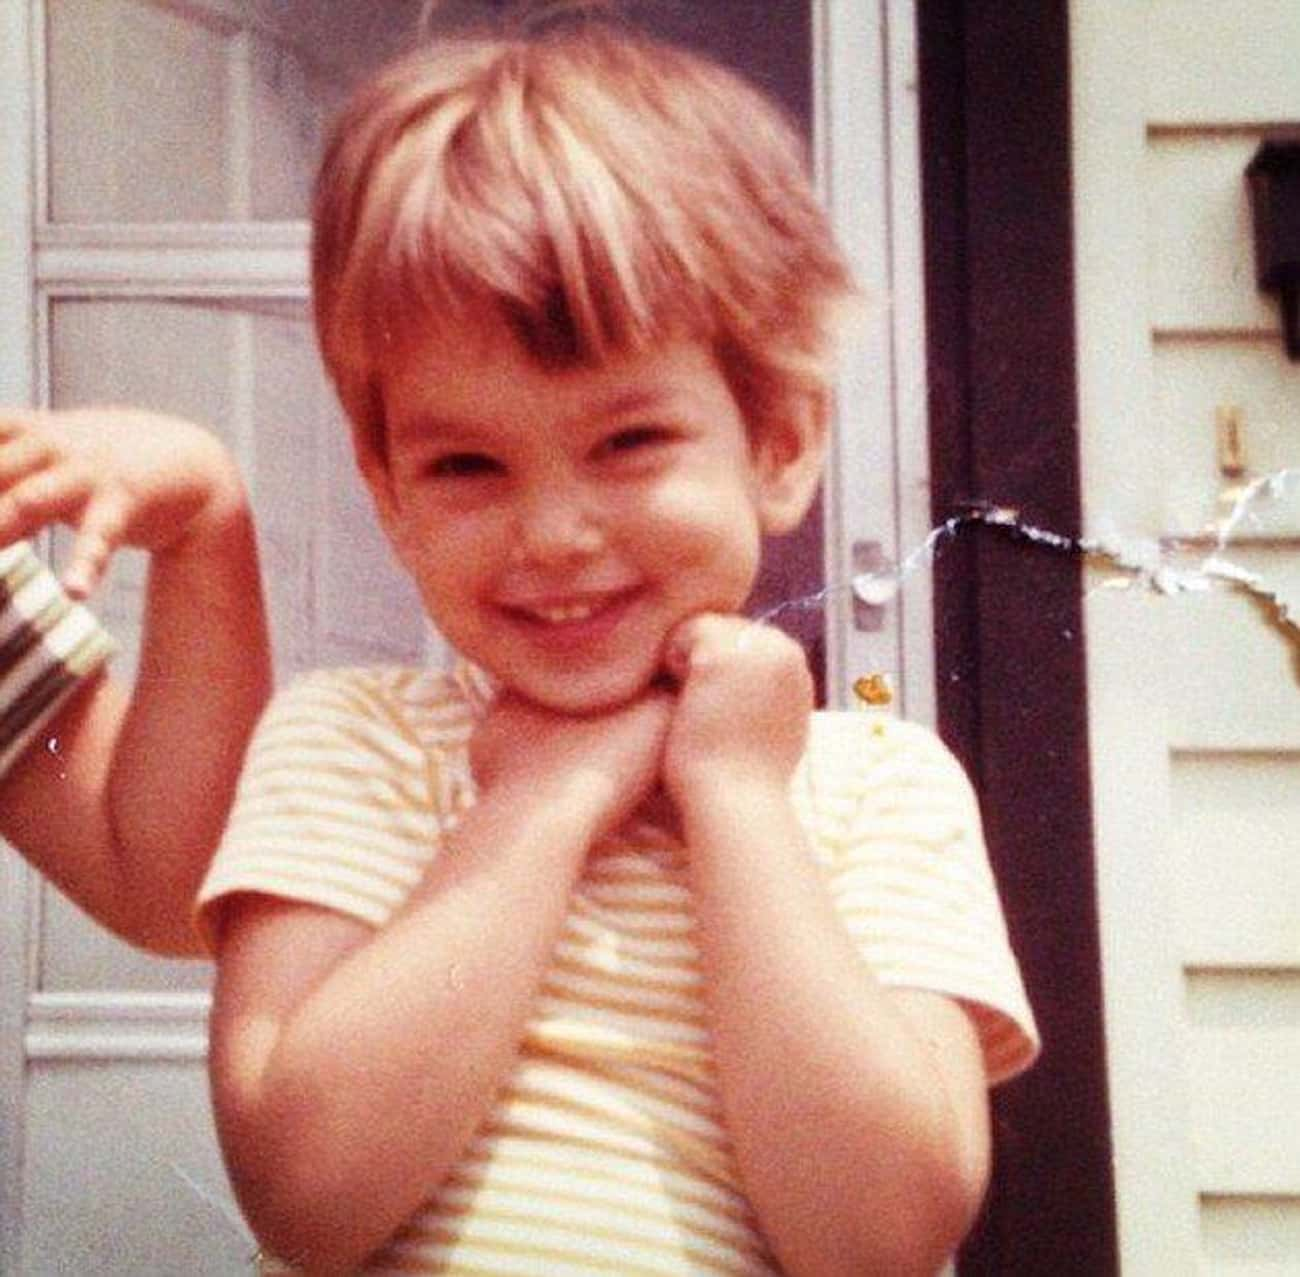 Little Cindy Crawford Rocks Th is listed (or ranked) 4 on the list 24 Adorable Old Photos of Celebrities Their Moms Would Probably Love to Show You